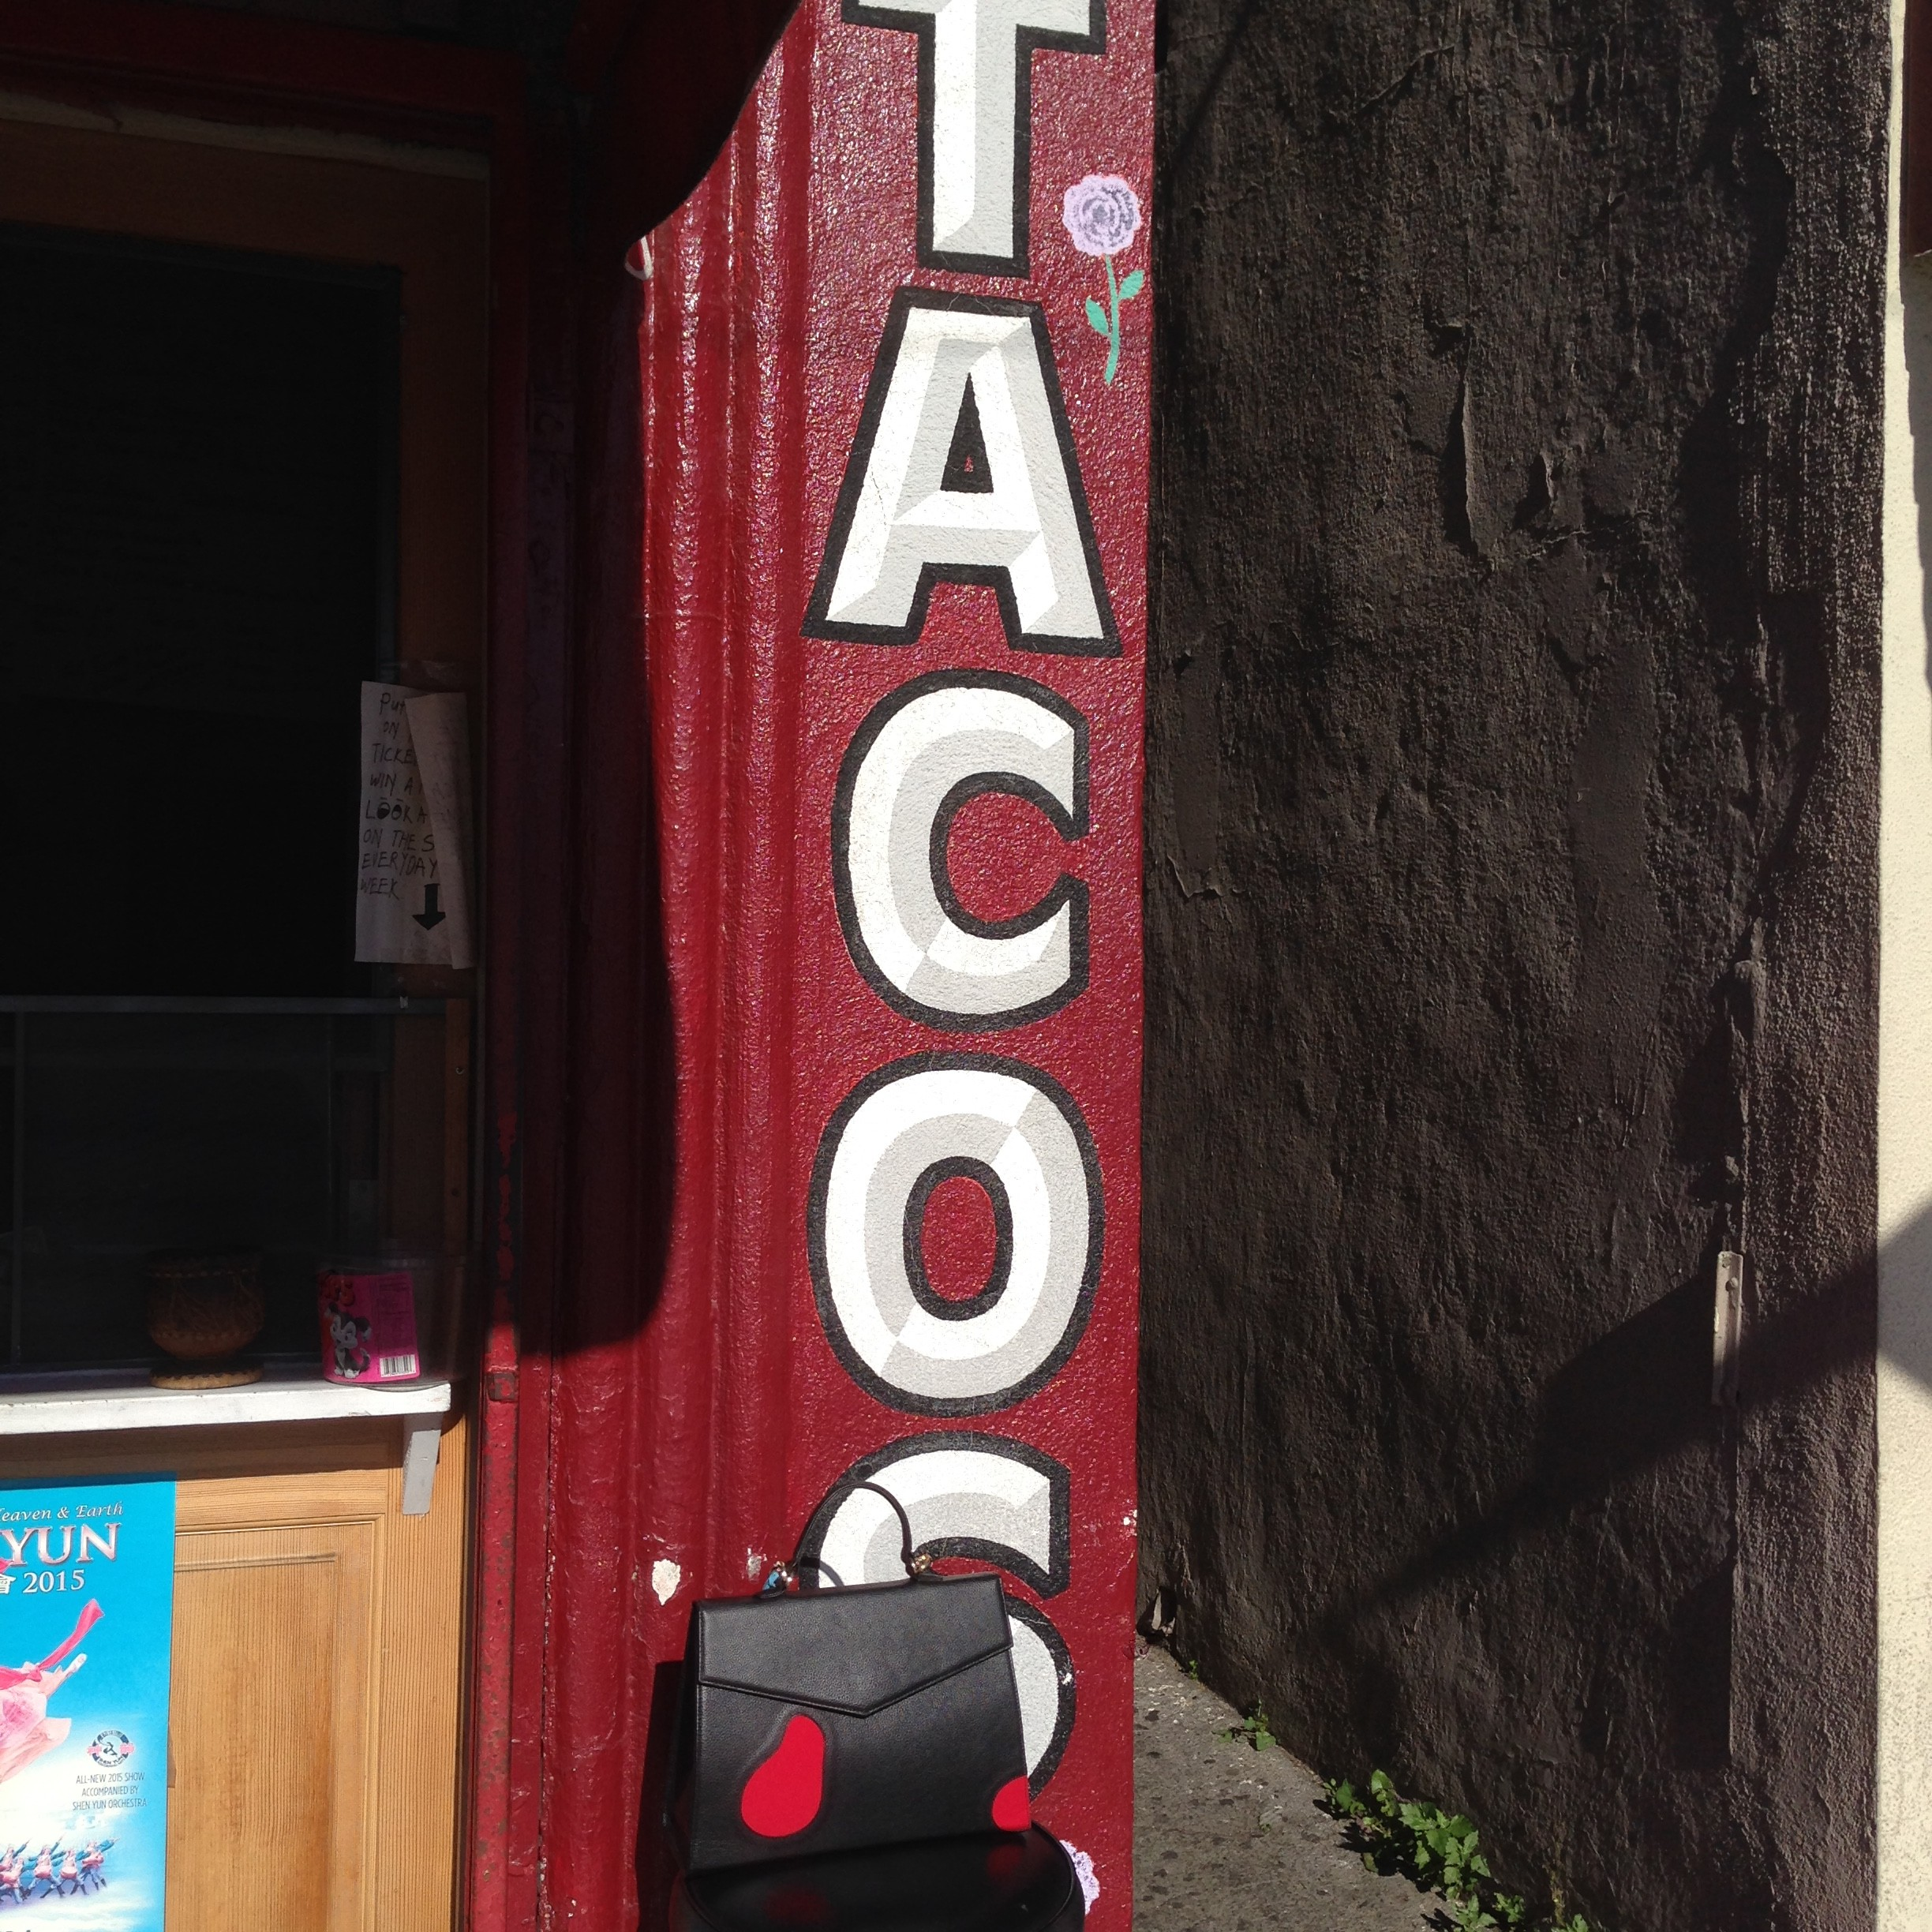 For lunch I grab a burrito at one of my favorite Mexican stands, Tacos Villa Corona.